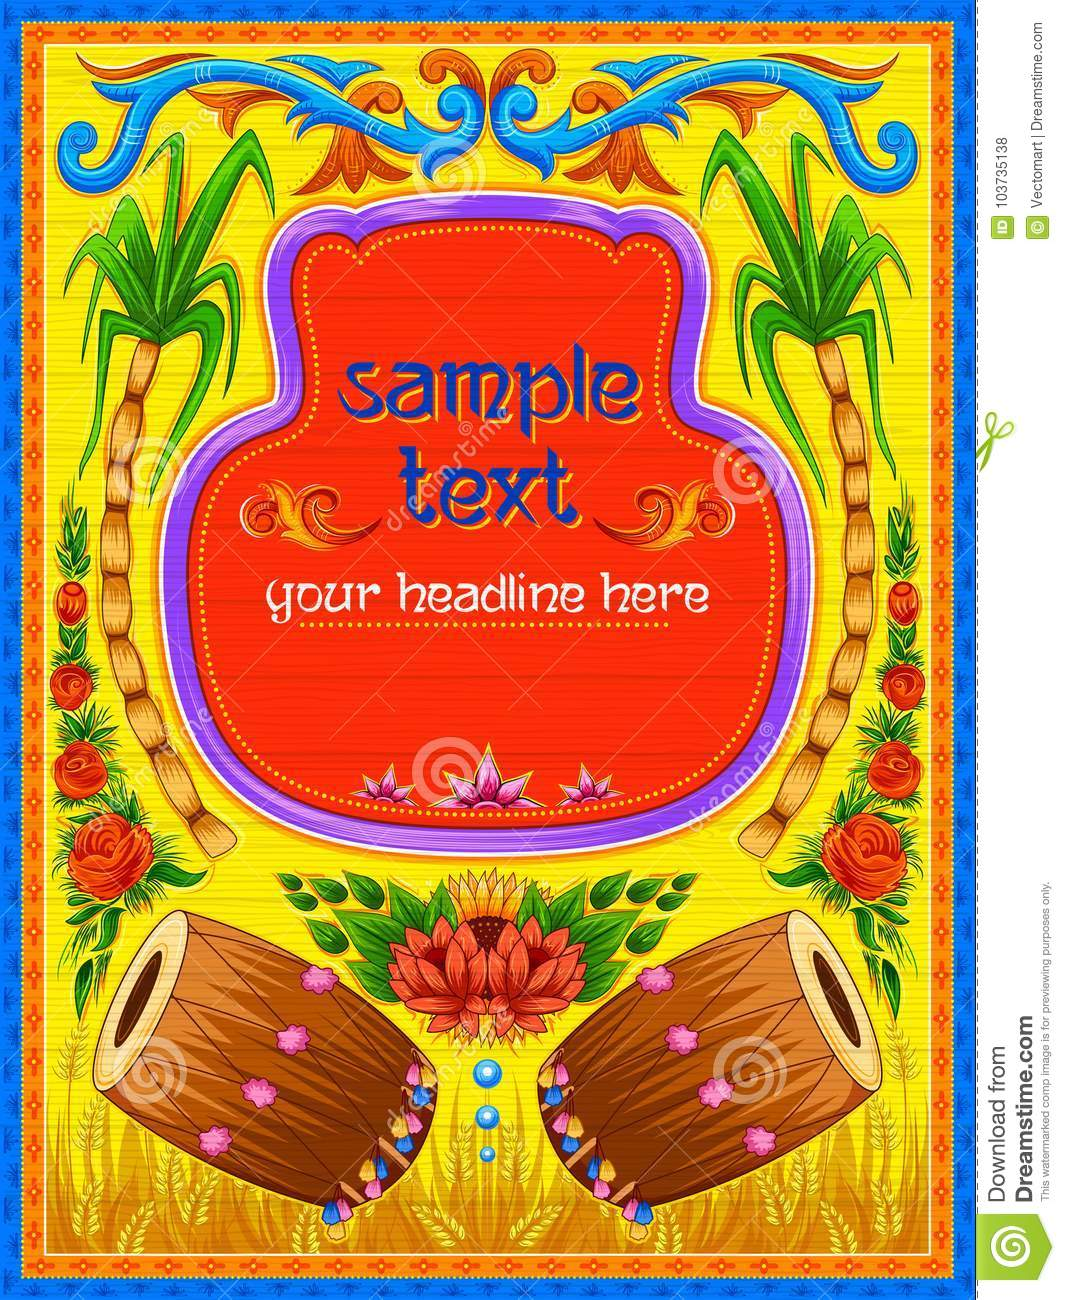 Colorful Welcome Banner In Truck Art Kitsch Style Of India Stock Vector Illustration Of Decoration Decor 103735138